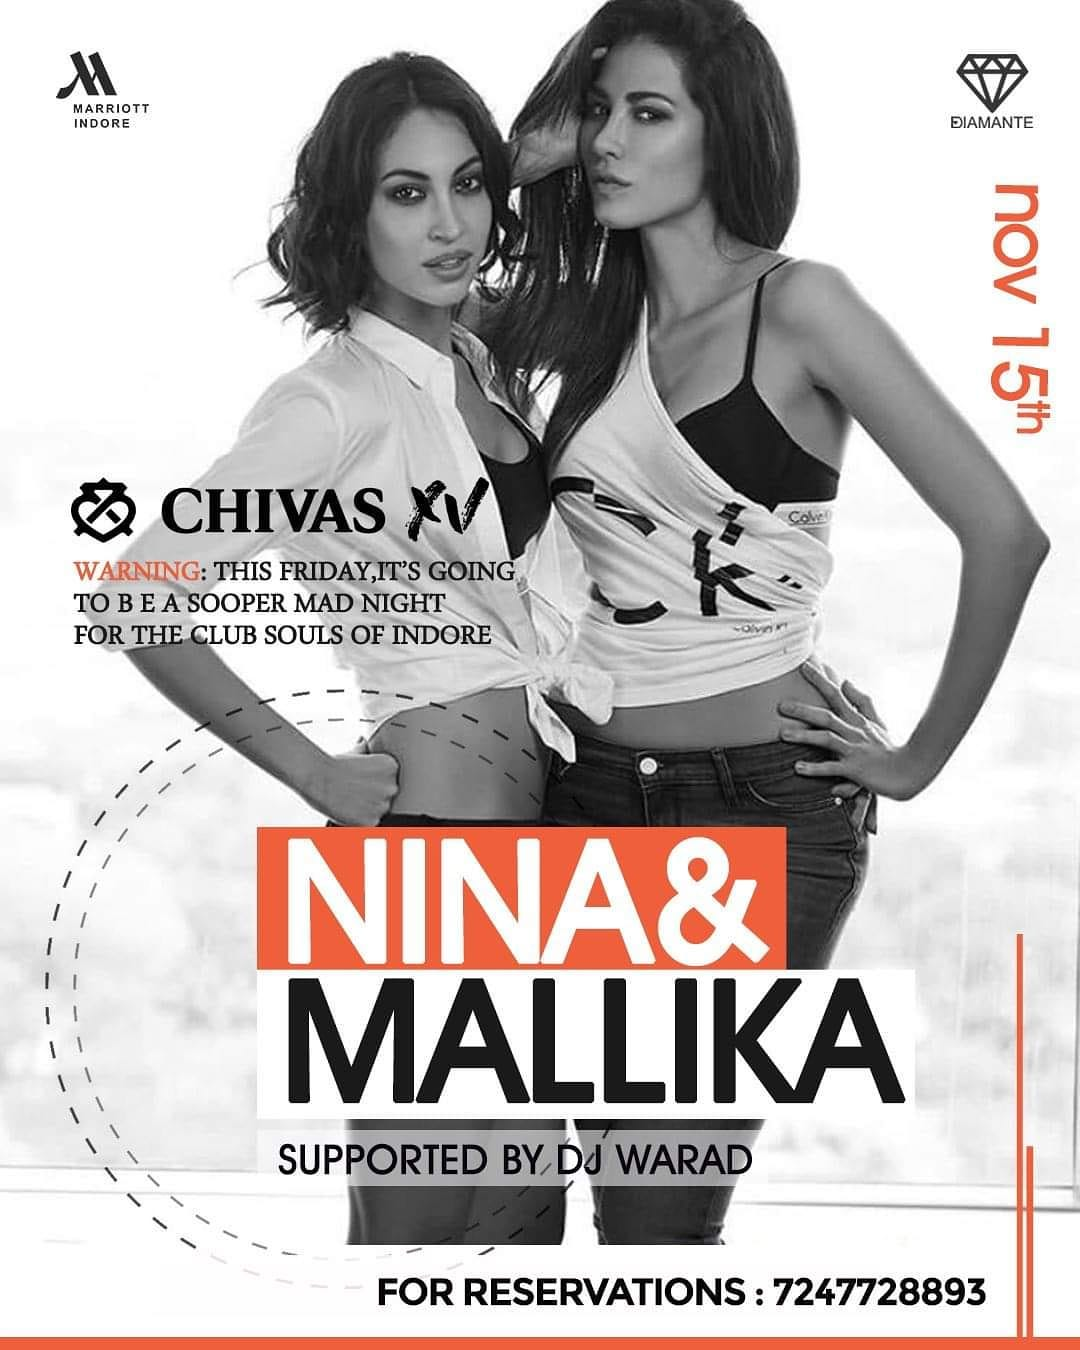 Nina & Malika In The House at Diamante indore HD marriott Hotel